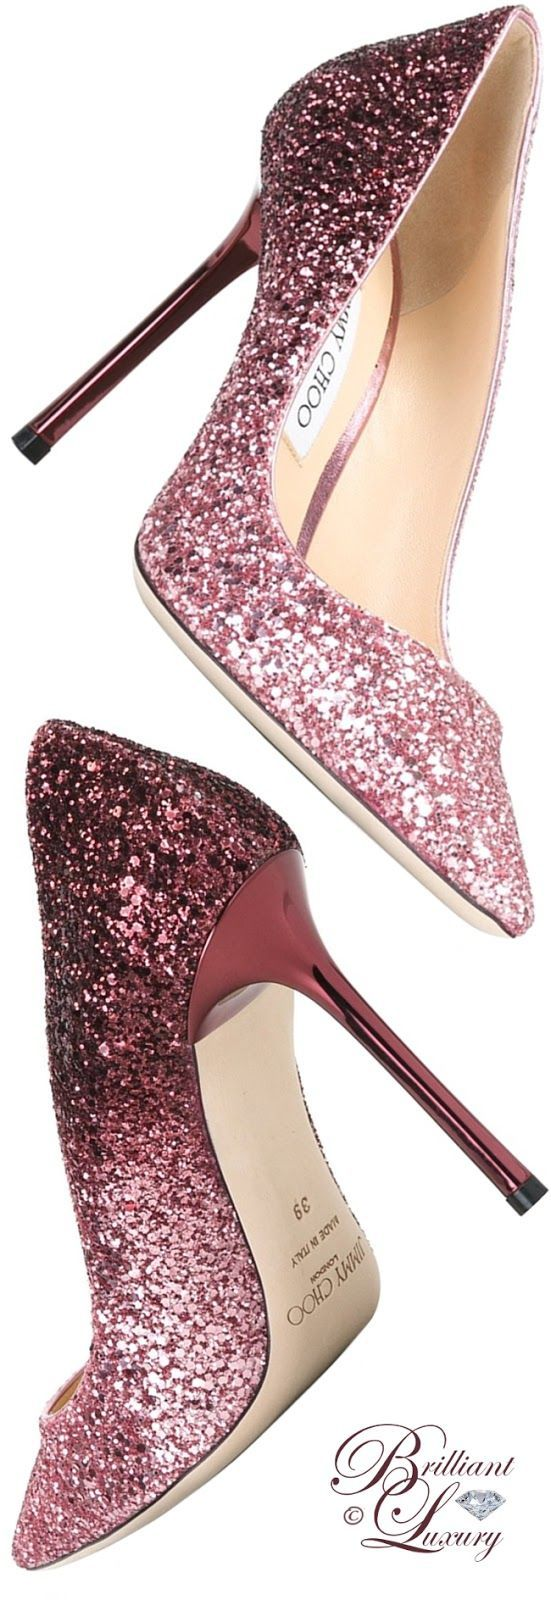 www.ScarlettAvery.com Brilliant Luxury by Emmy DE ♦ Jimmy Choo Romy Pumps